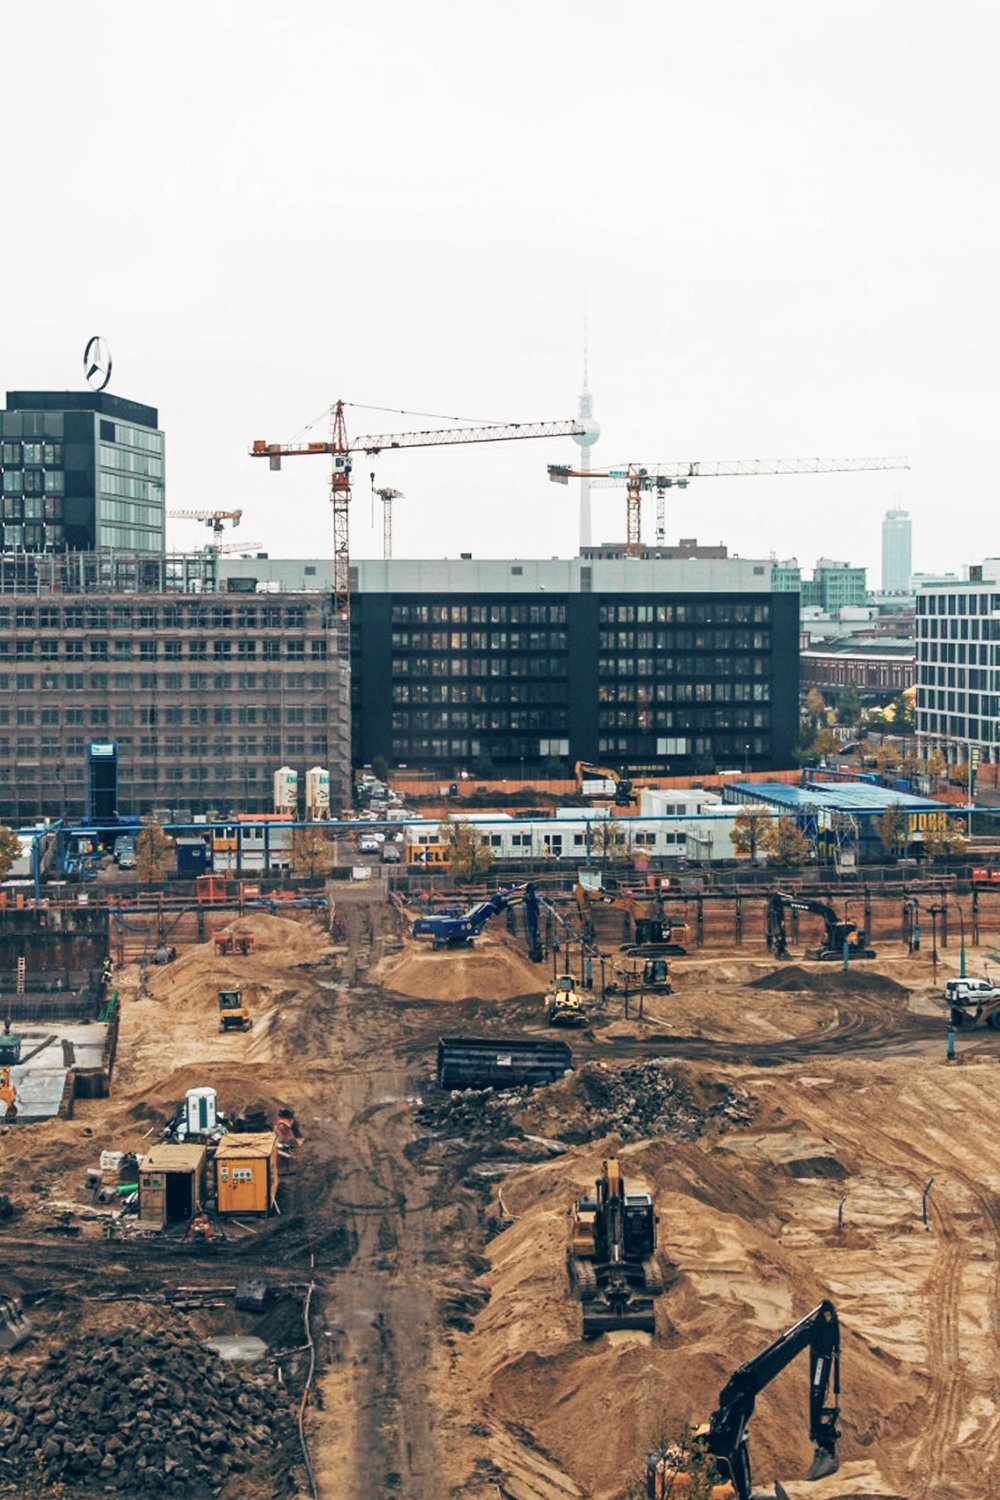 Berlin - the city of cranes